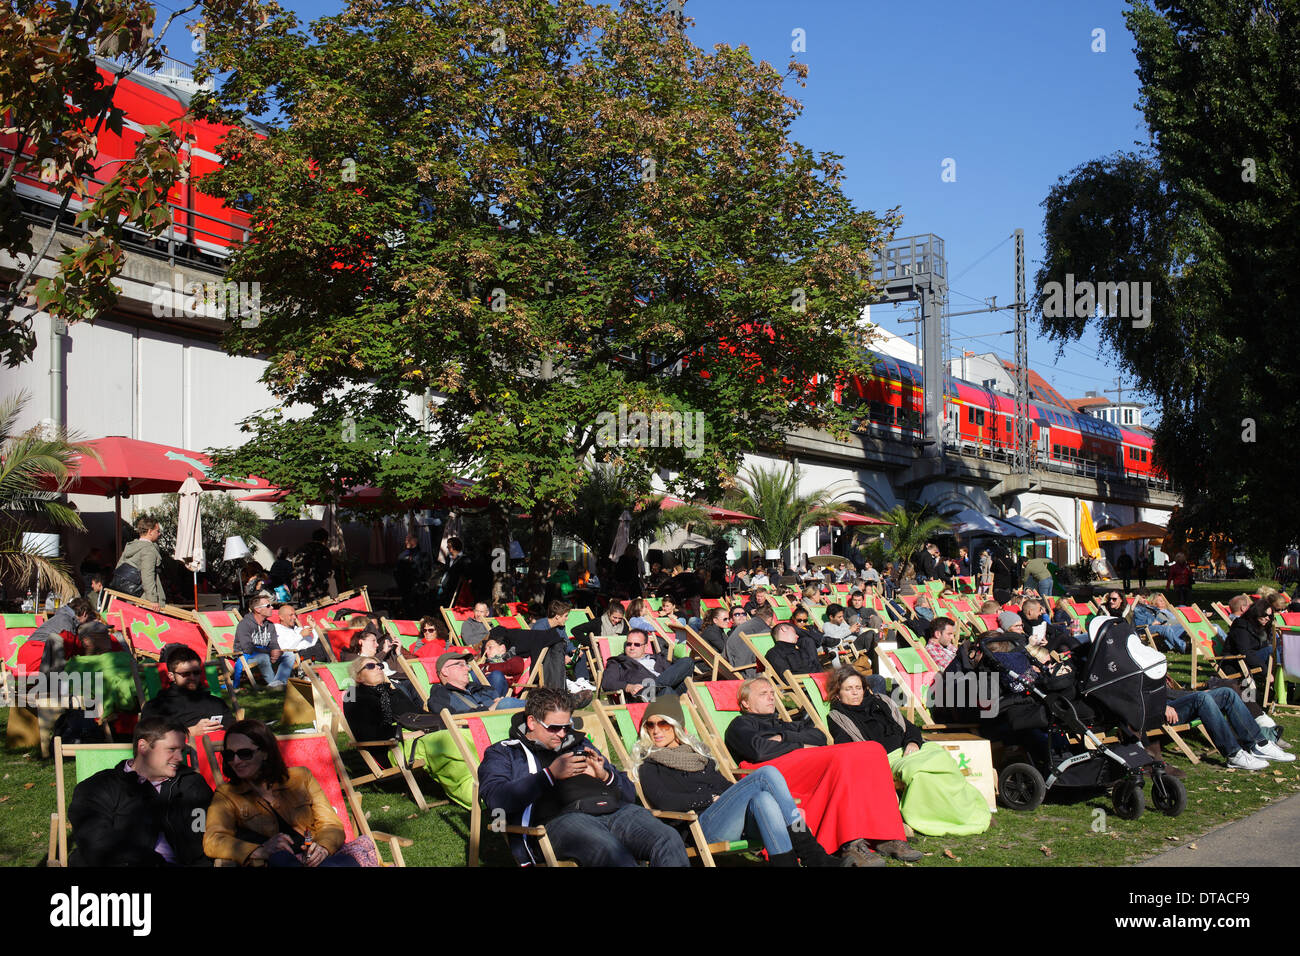 Berlin, Germany, guests basking in deckchairs on the light rail line - Stock Image